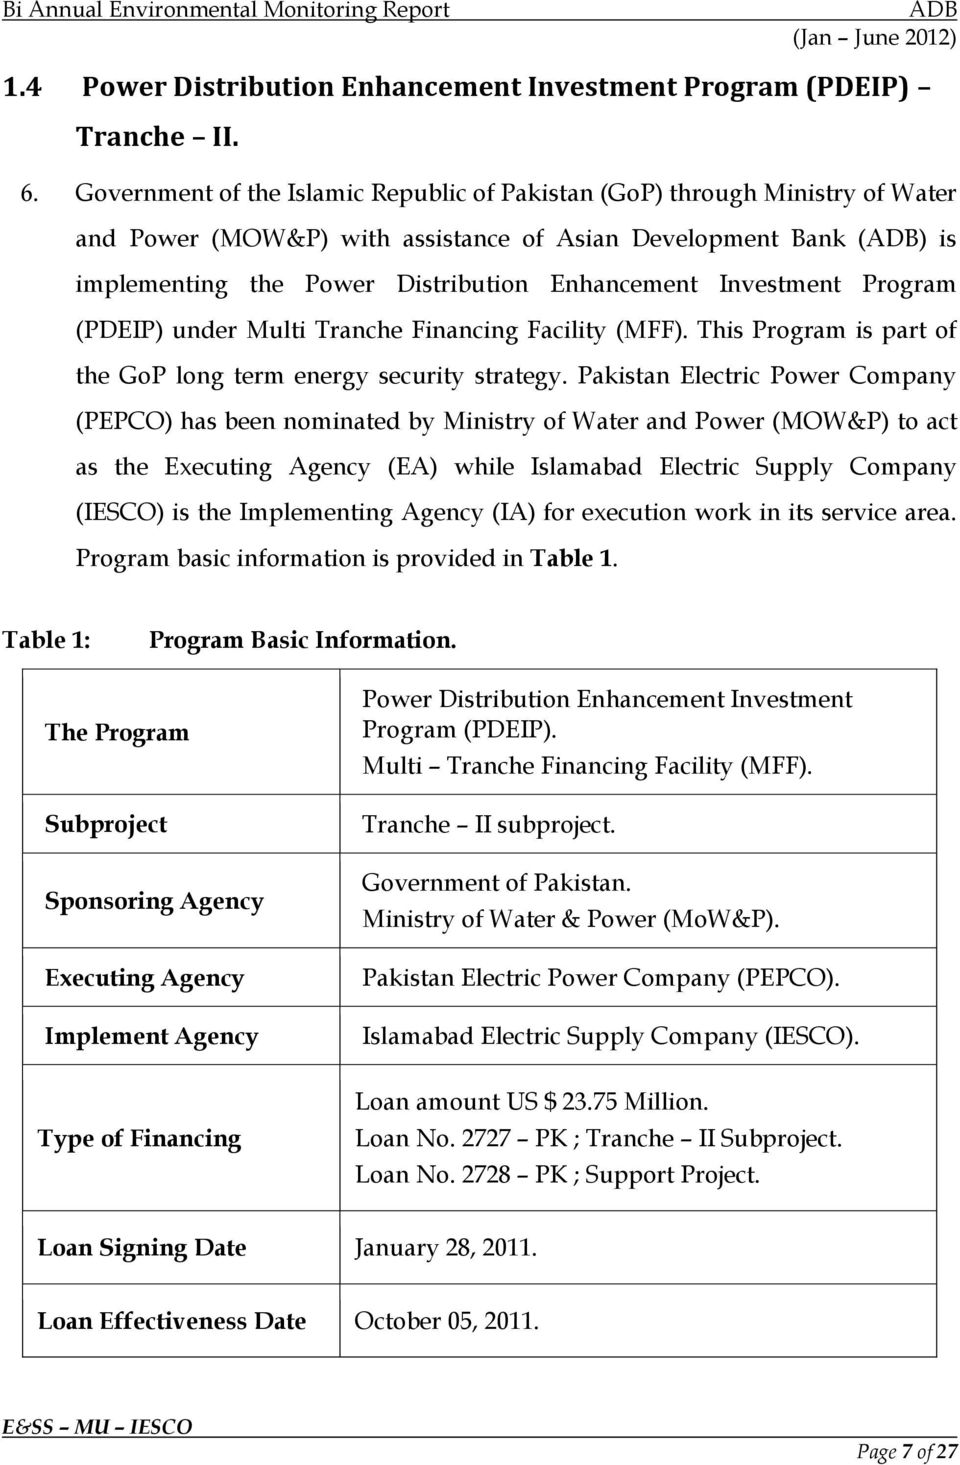 Investment Program (PDEIP) under Multi Tranche Financing Facility (MFF). This Program is part of the GoP long term energy security strategy.